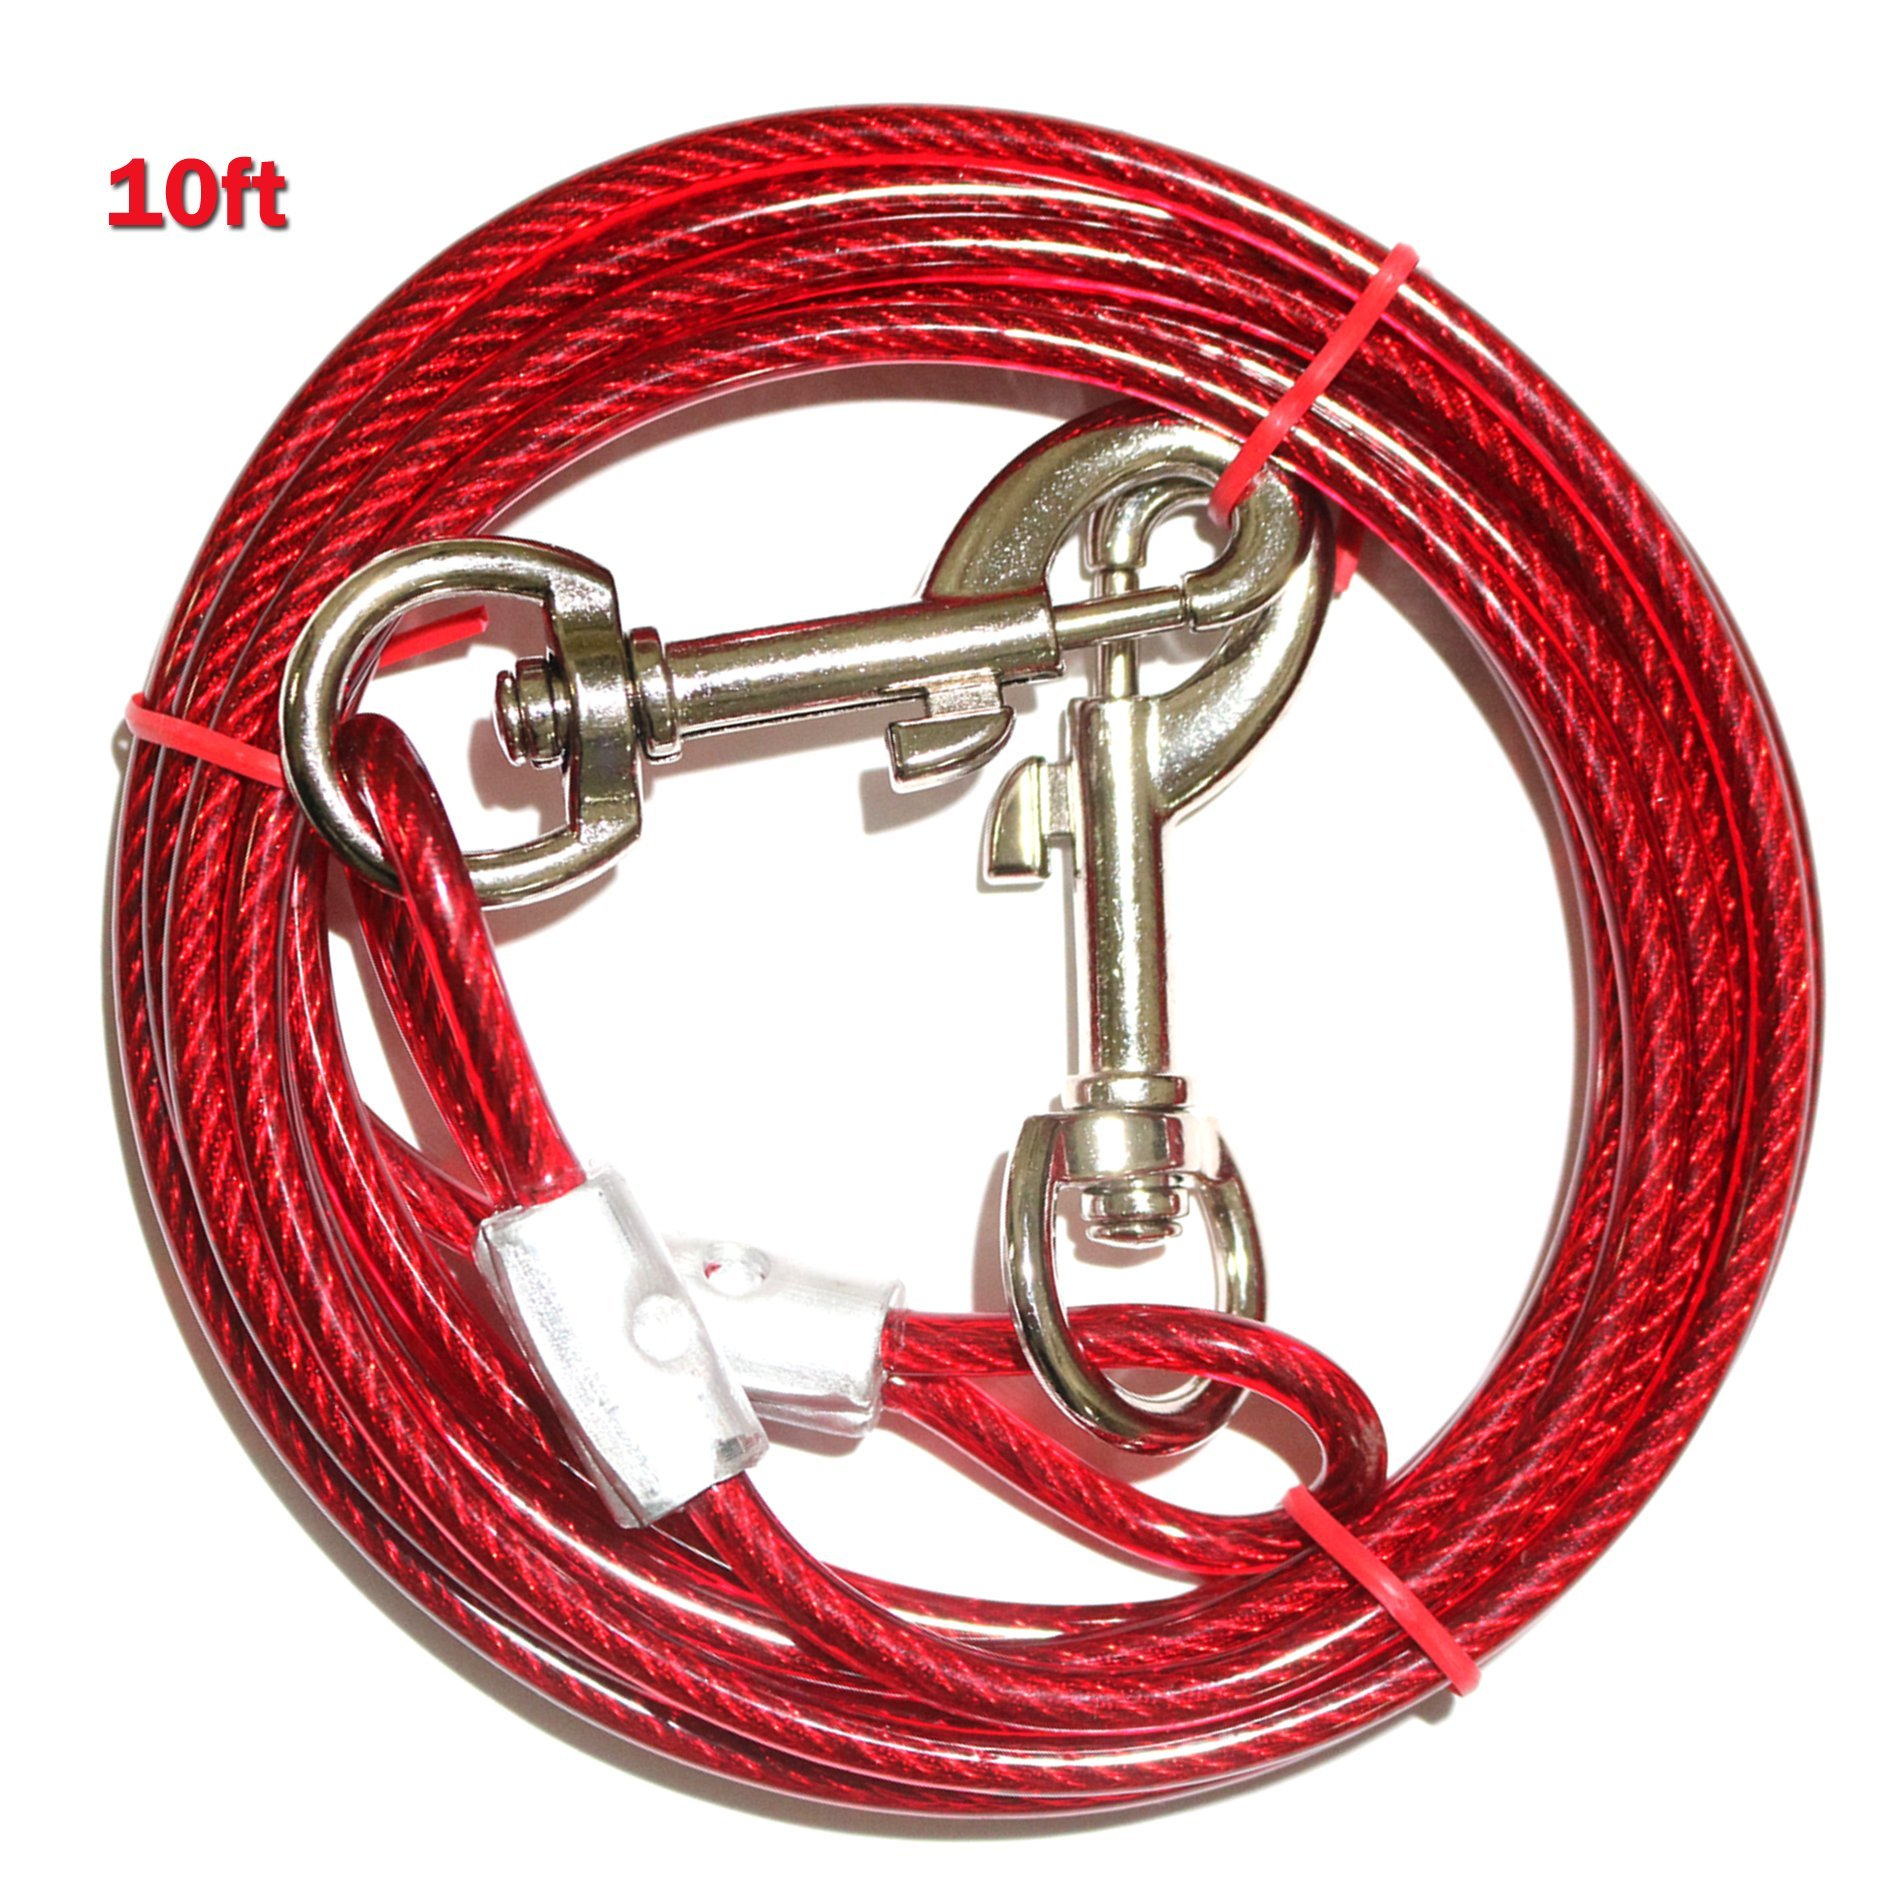 PETJOY 10ft Tie Out Cable for Dogs, Dog Tie Out Cable for Pet Dogs, Up to 60 Pounds